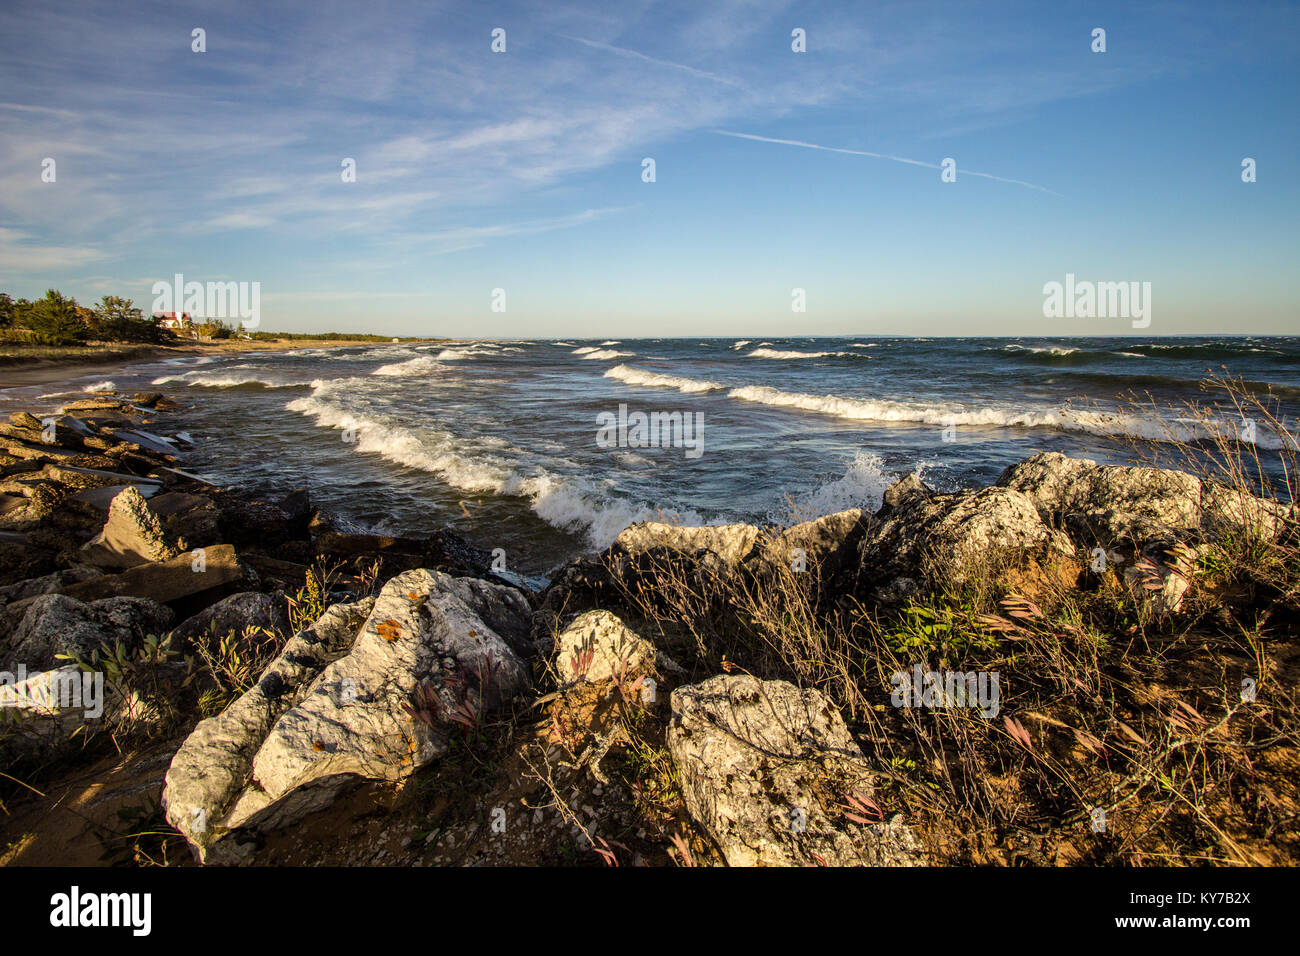 Scenic Rocky Coast. Waves crash on the rocky coast of Lake Superior on a sunny summer afternoon. - Stock Image